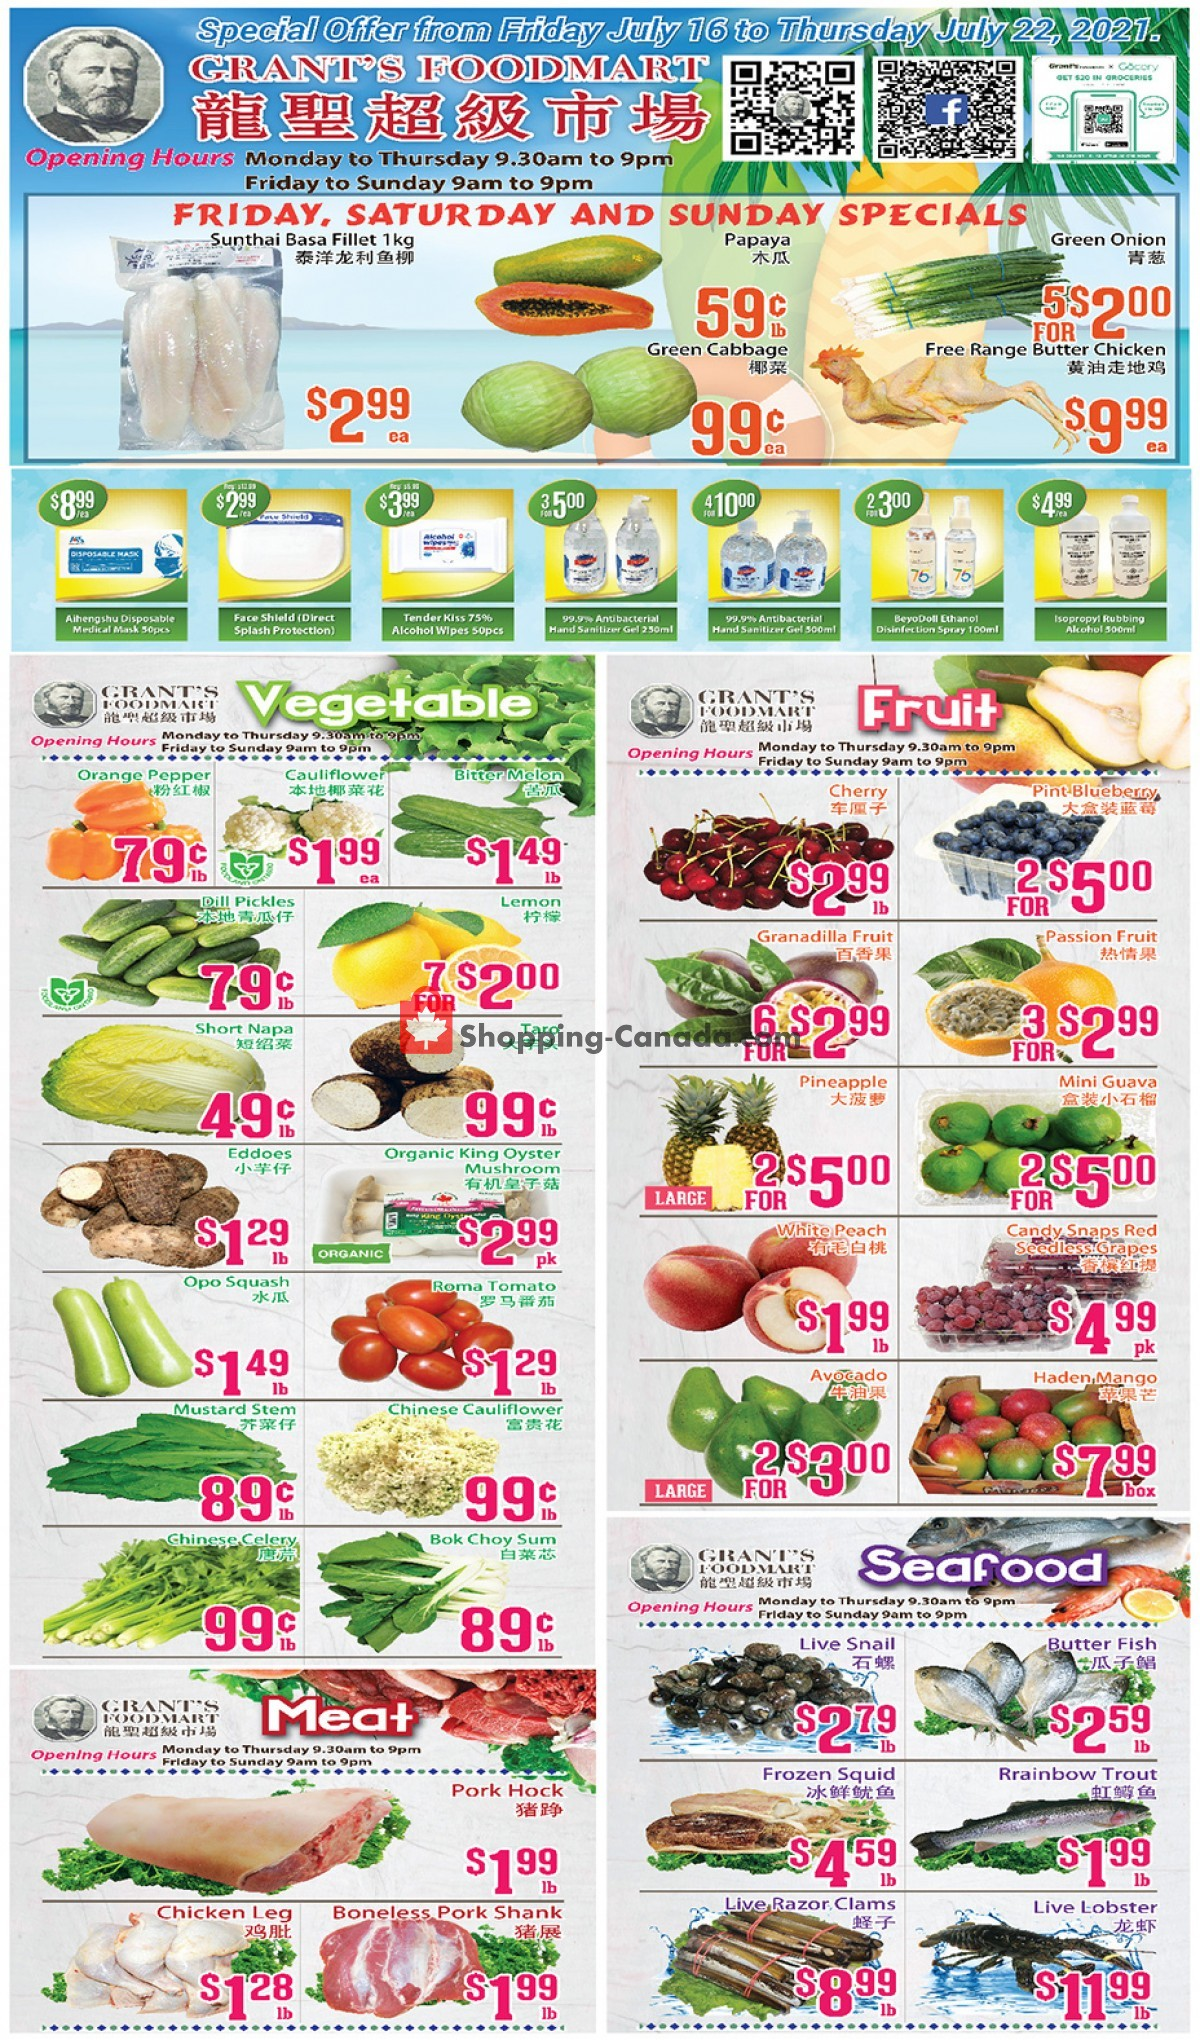 Flyer Grant's Foodmart Canada - from Friday July 16, 2021 to Thursday July 22, 2021